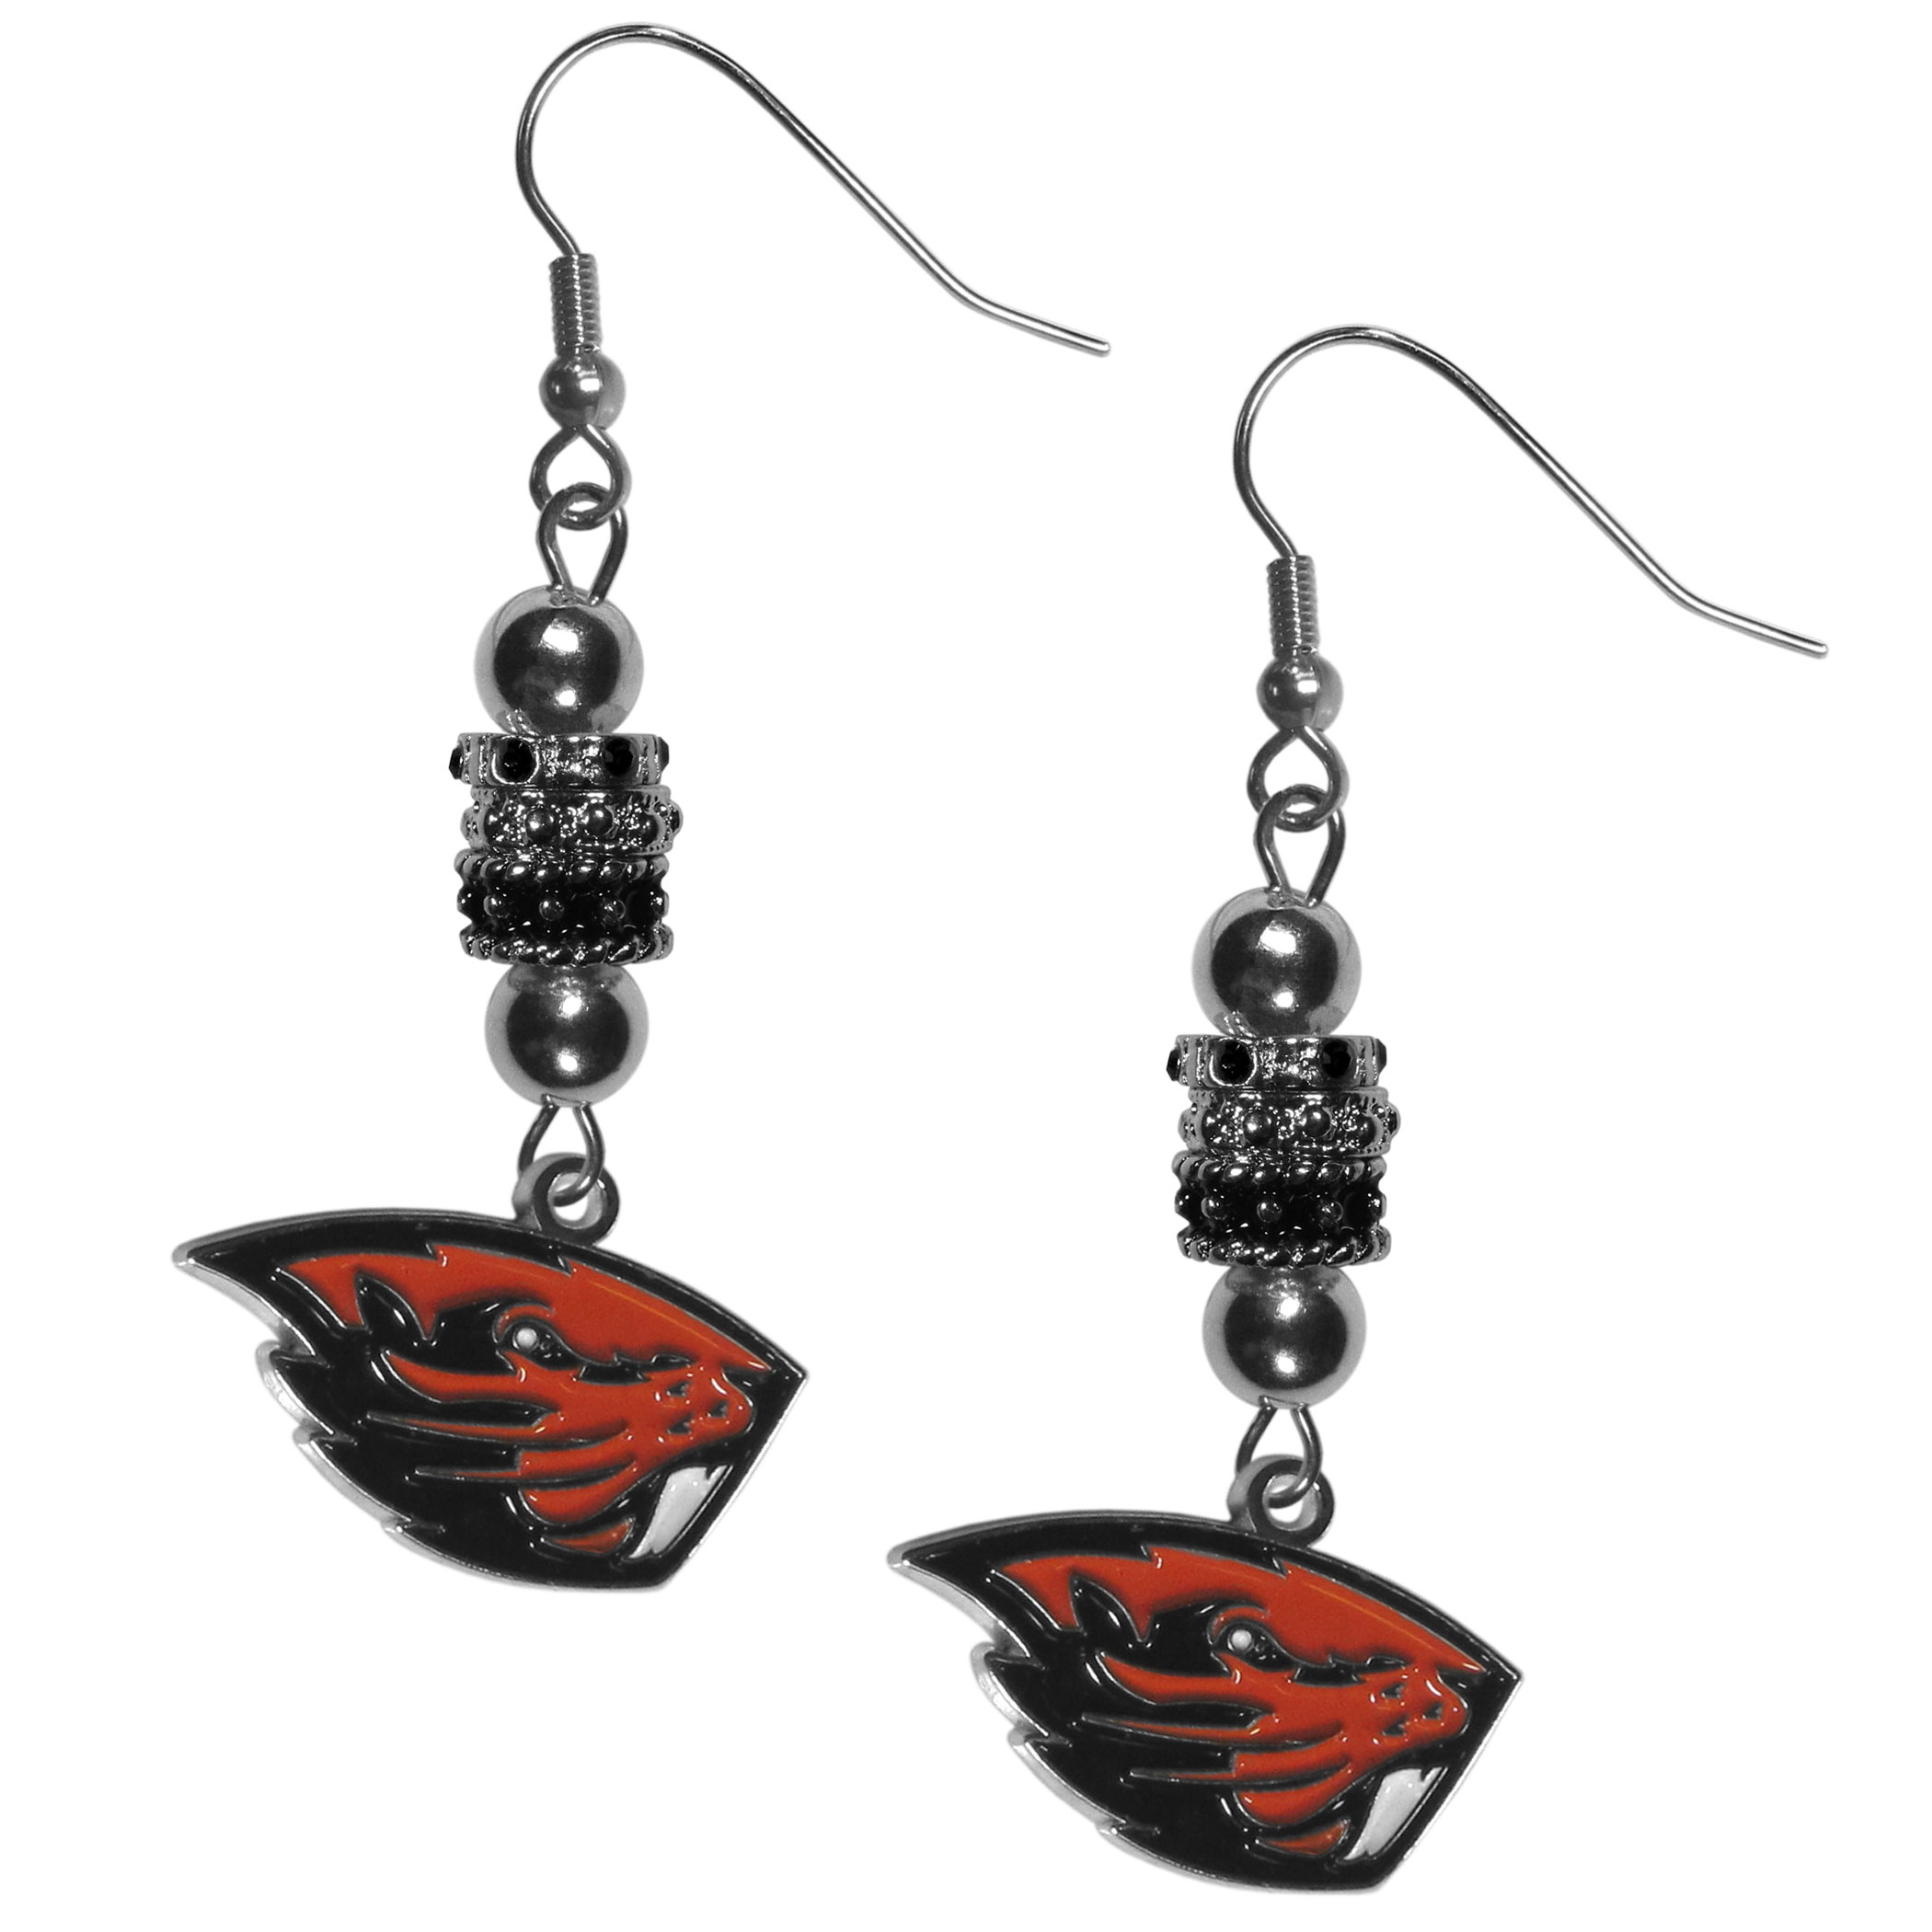 Oregon St. Beavers Euro Bead Earrings - These beautiful euro style earrings feature 3 euro beads and a detailed Oregon St. Beavers charm on hypoallergenic fishhook posts.